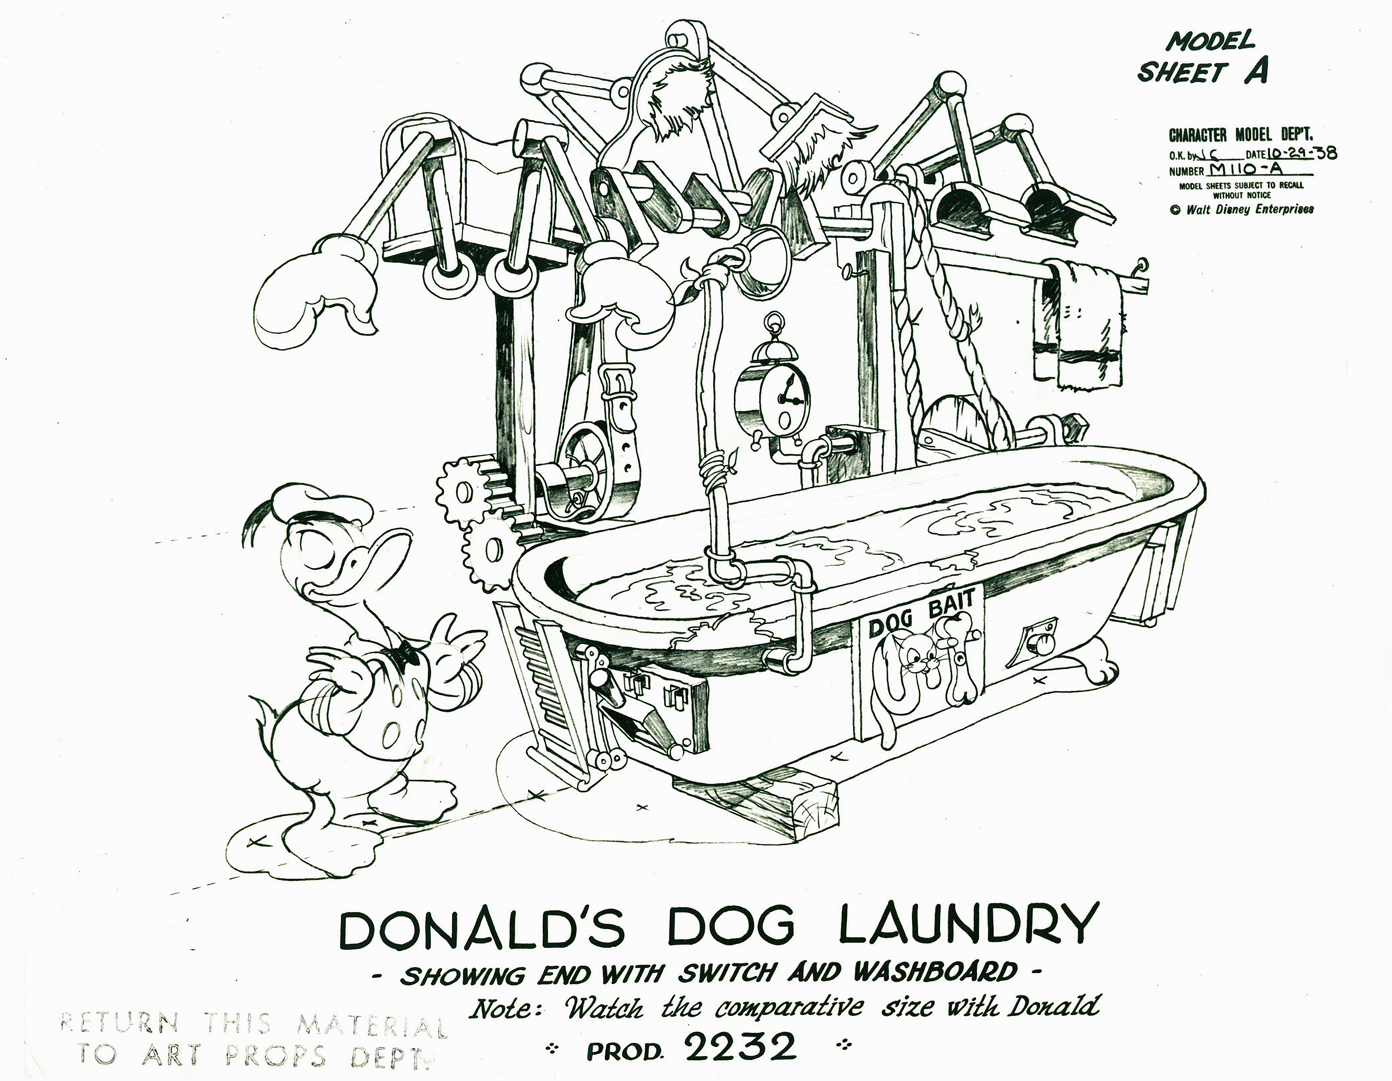 Donald's Dog Laundry, 1940